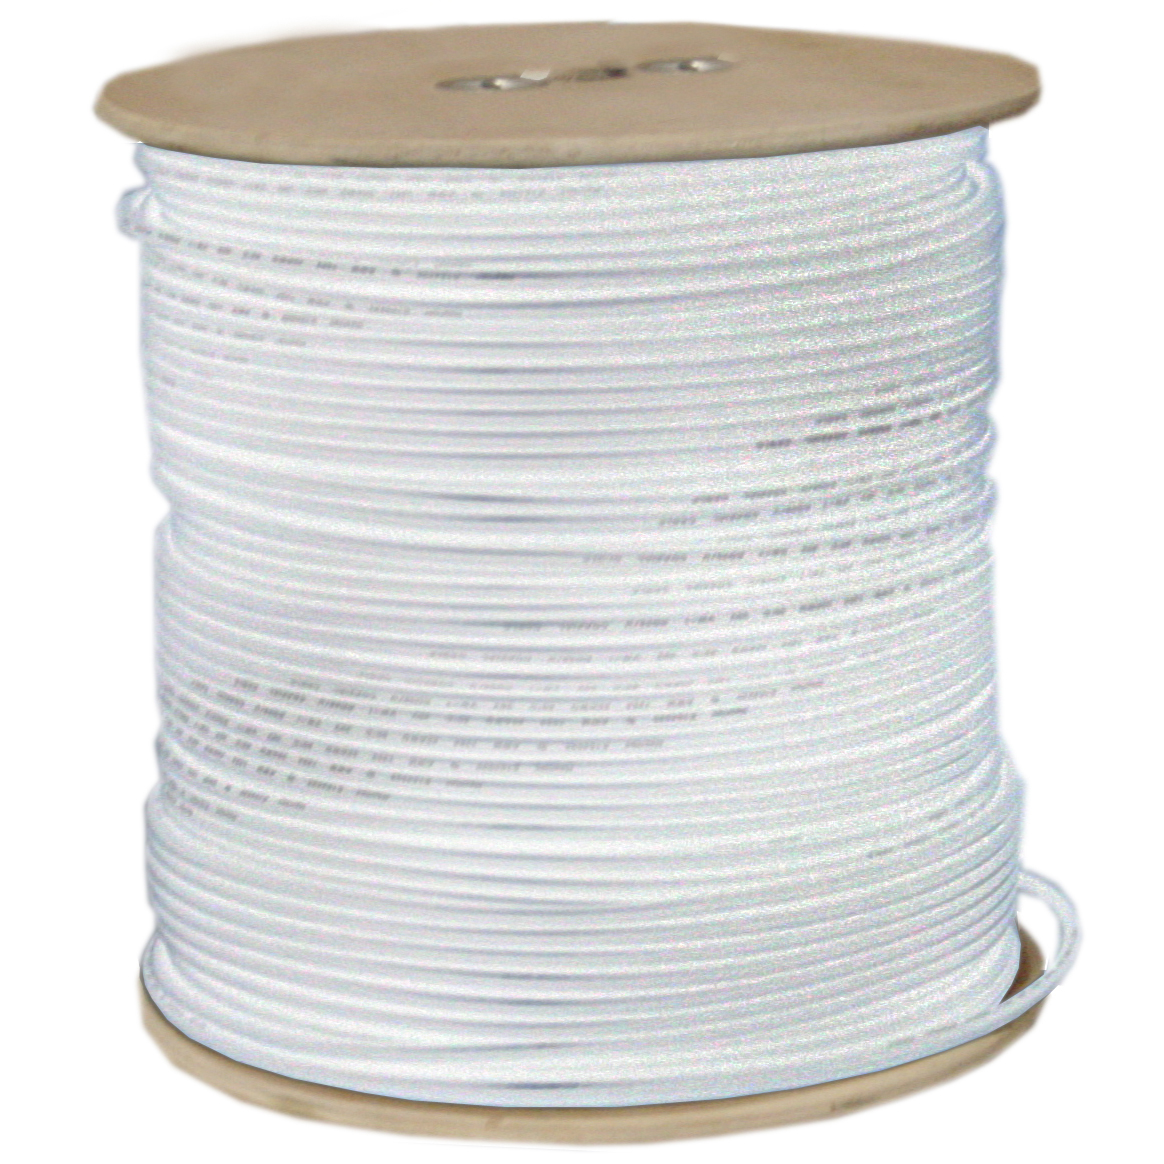 RG59 Siamese Plenum Solid Coaxial Cable + 18/2 (18AWG 2C) Power, White, Spool, 1000 ft - 11X3-18291NH